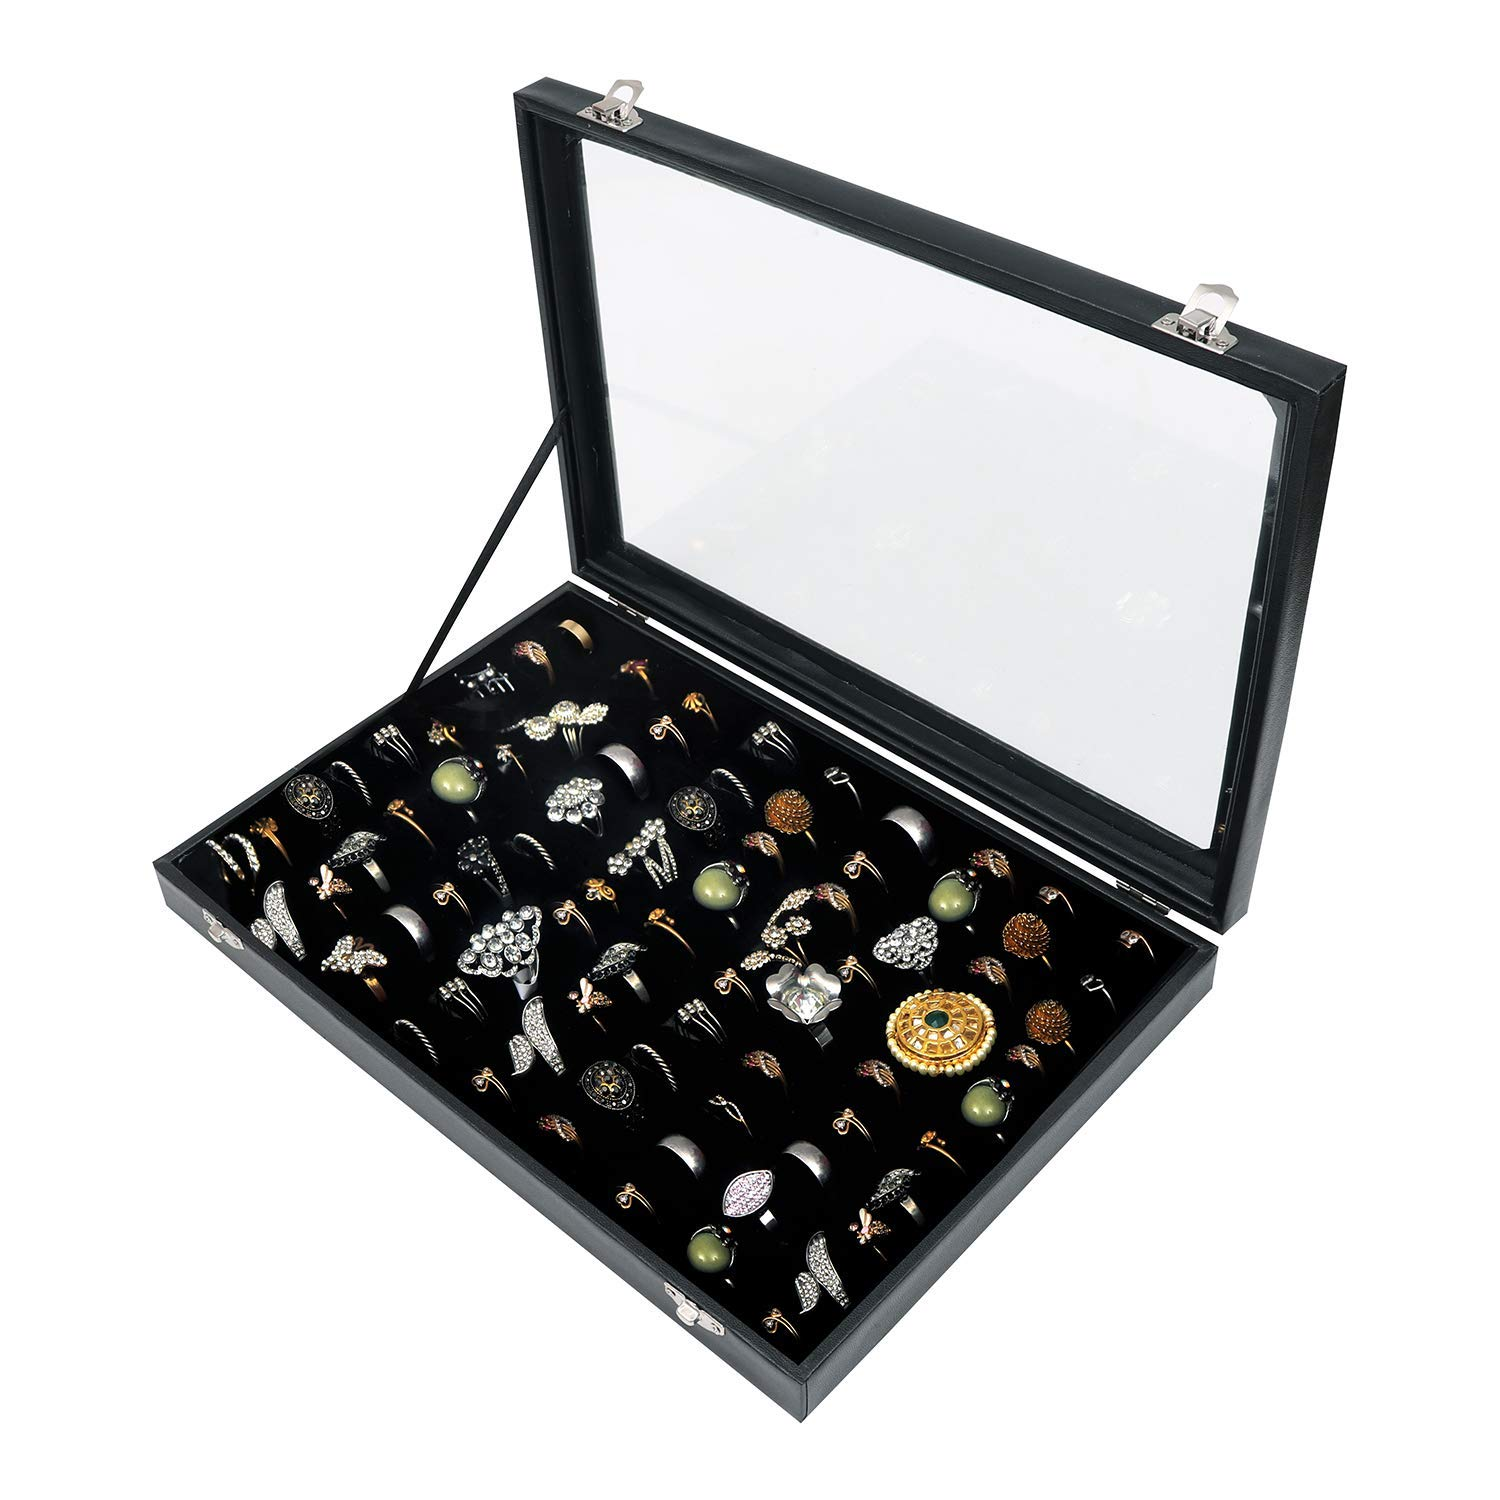 100 Slots Ring Storage Display Box with Transparent Lid Ring Holder Showcase for Store Display, Jewelry Show Home Jewelry Tray Organizer Black